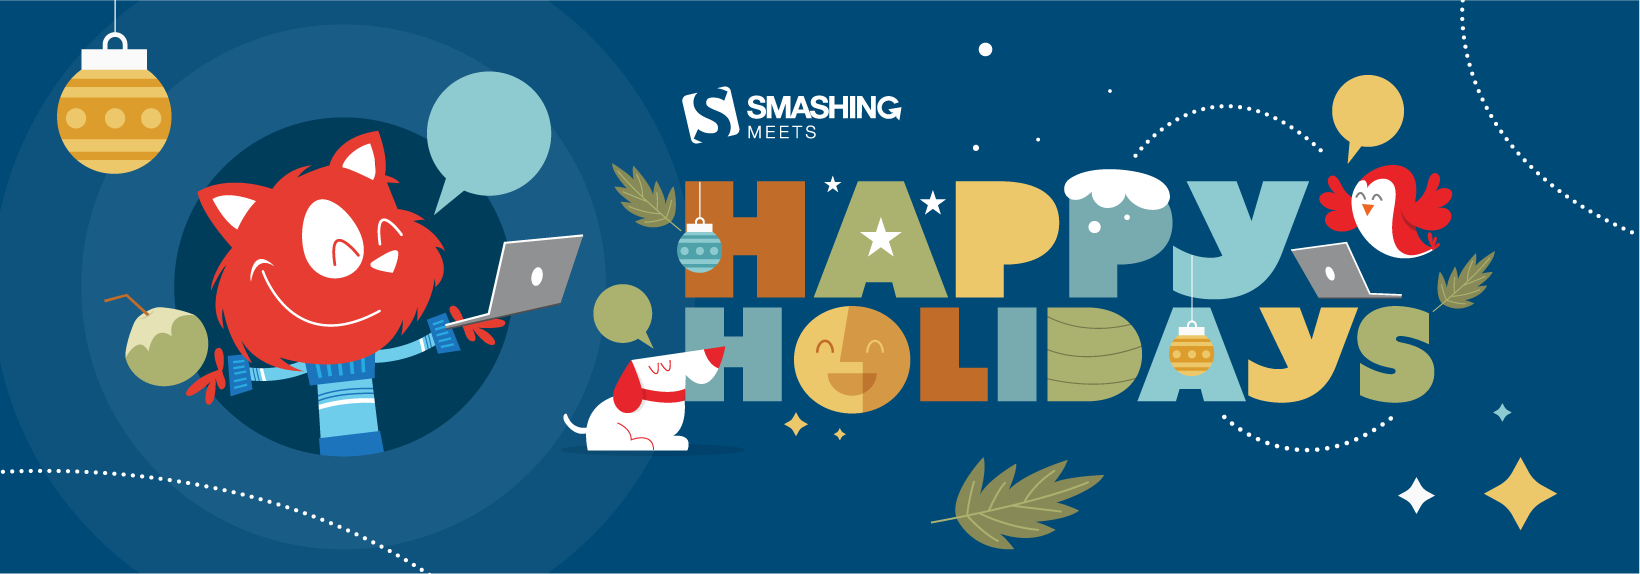 Smashing Meets — Happy Holiday Edition